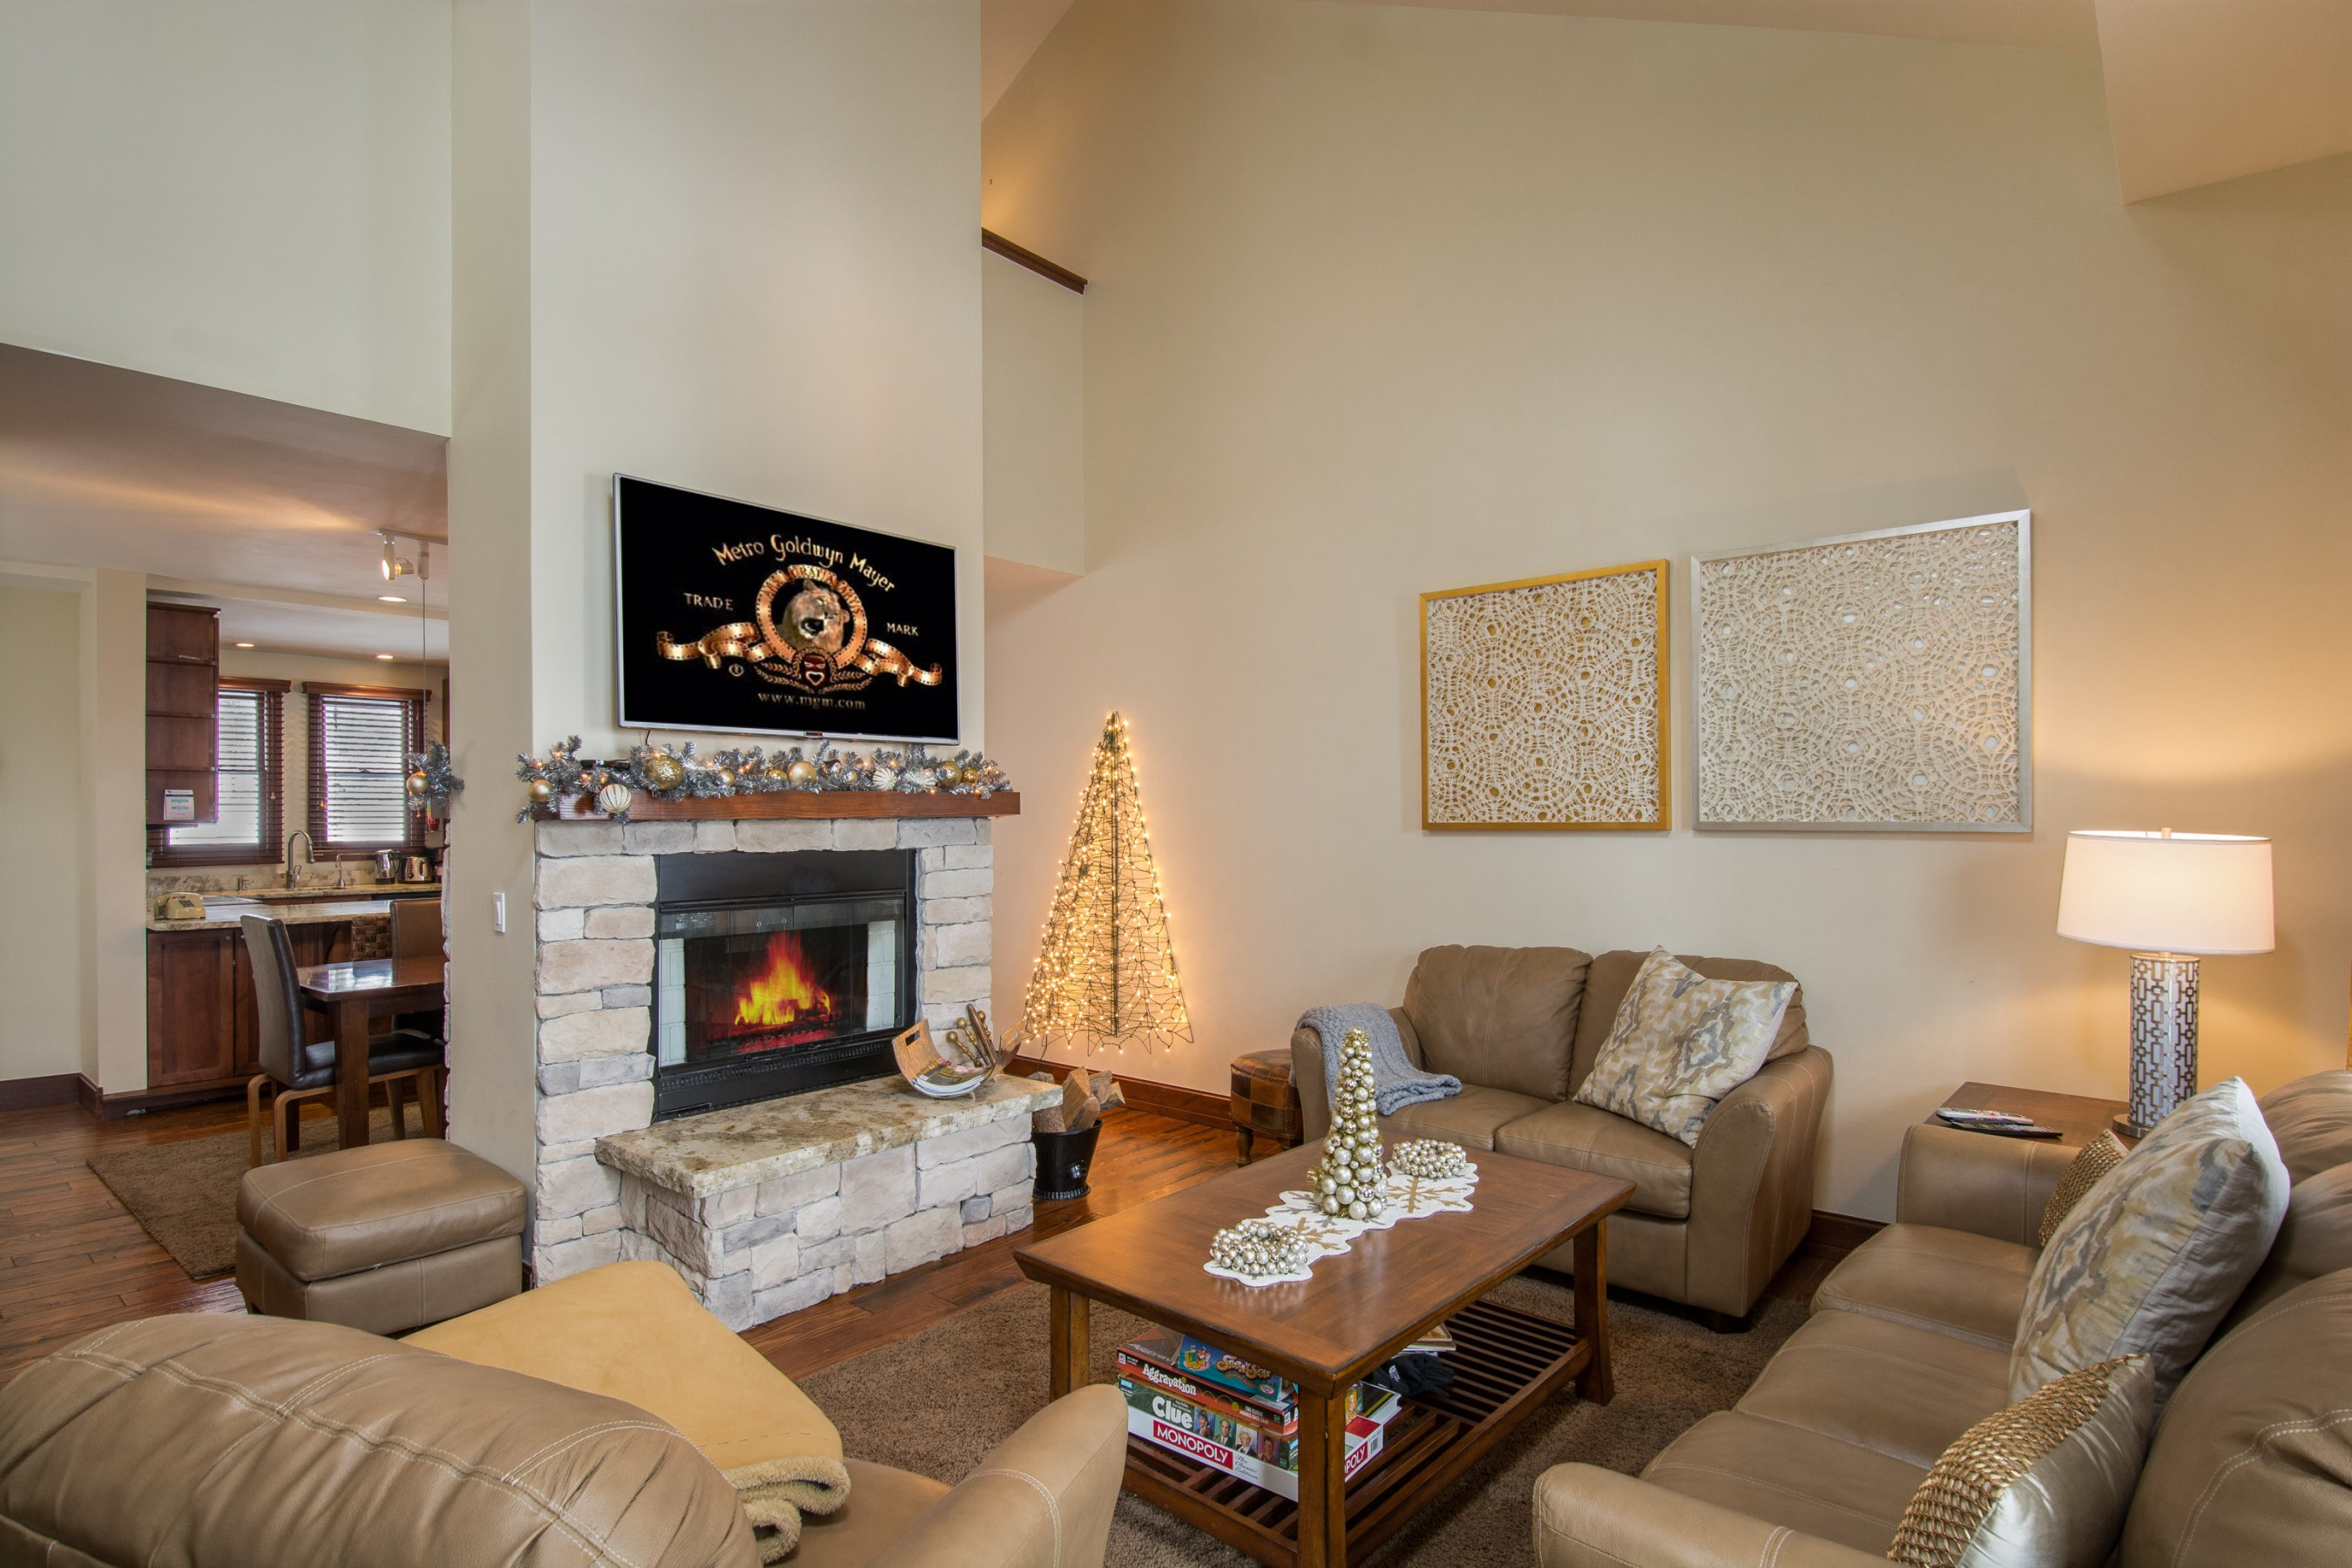 Condominium for Sale at Immaculate Ski-inSki-out Condo 425 Wood Road, Unit 12 Snowmass Village, Colorado, 81615 United States